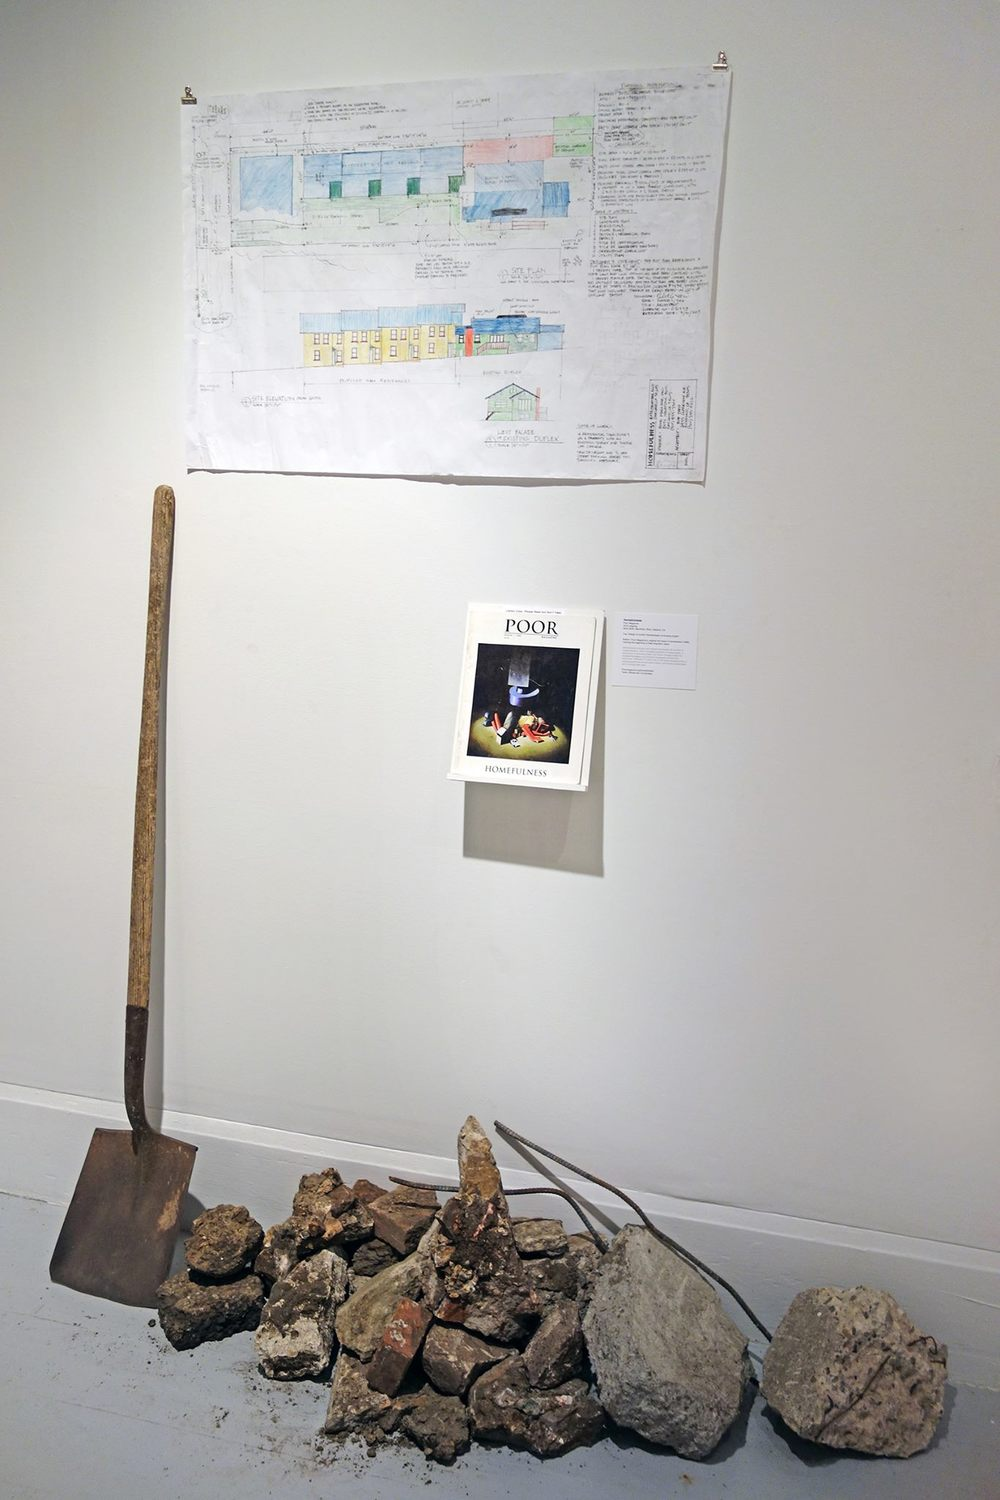 Installation about Poor Magazine's Homefulness project including shovel and broken foundation from their land, map of the upcoming homefulness housing project and original 1996 first issue of Poor Mag's Homefulness idea and vision.   — with  Lisa Tiny Gray-Garcia  and  POOR Magazine .